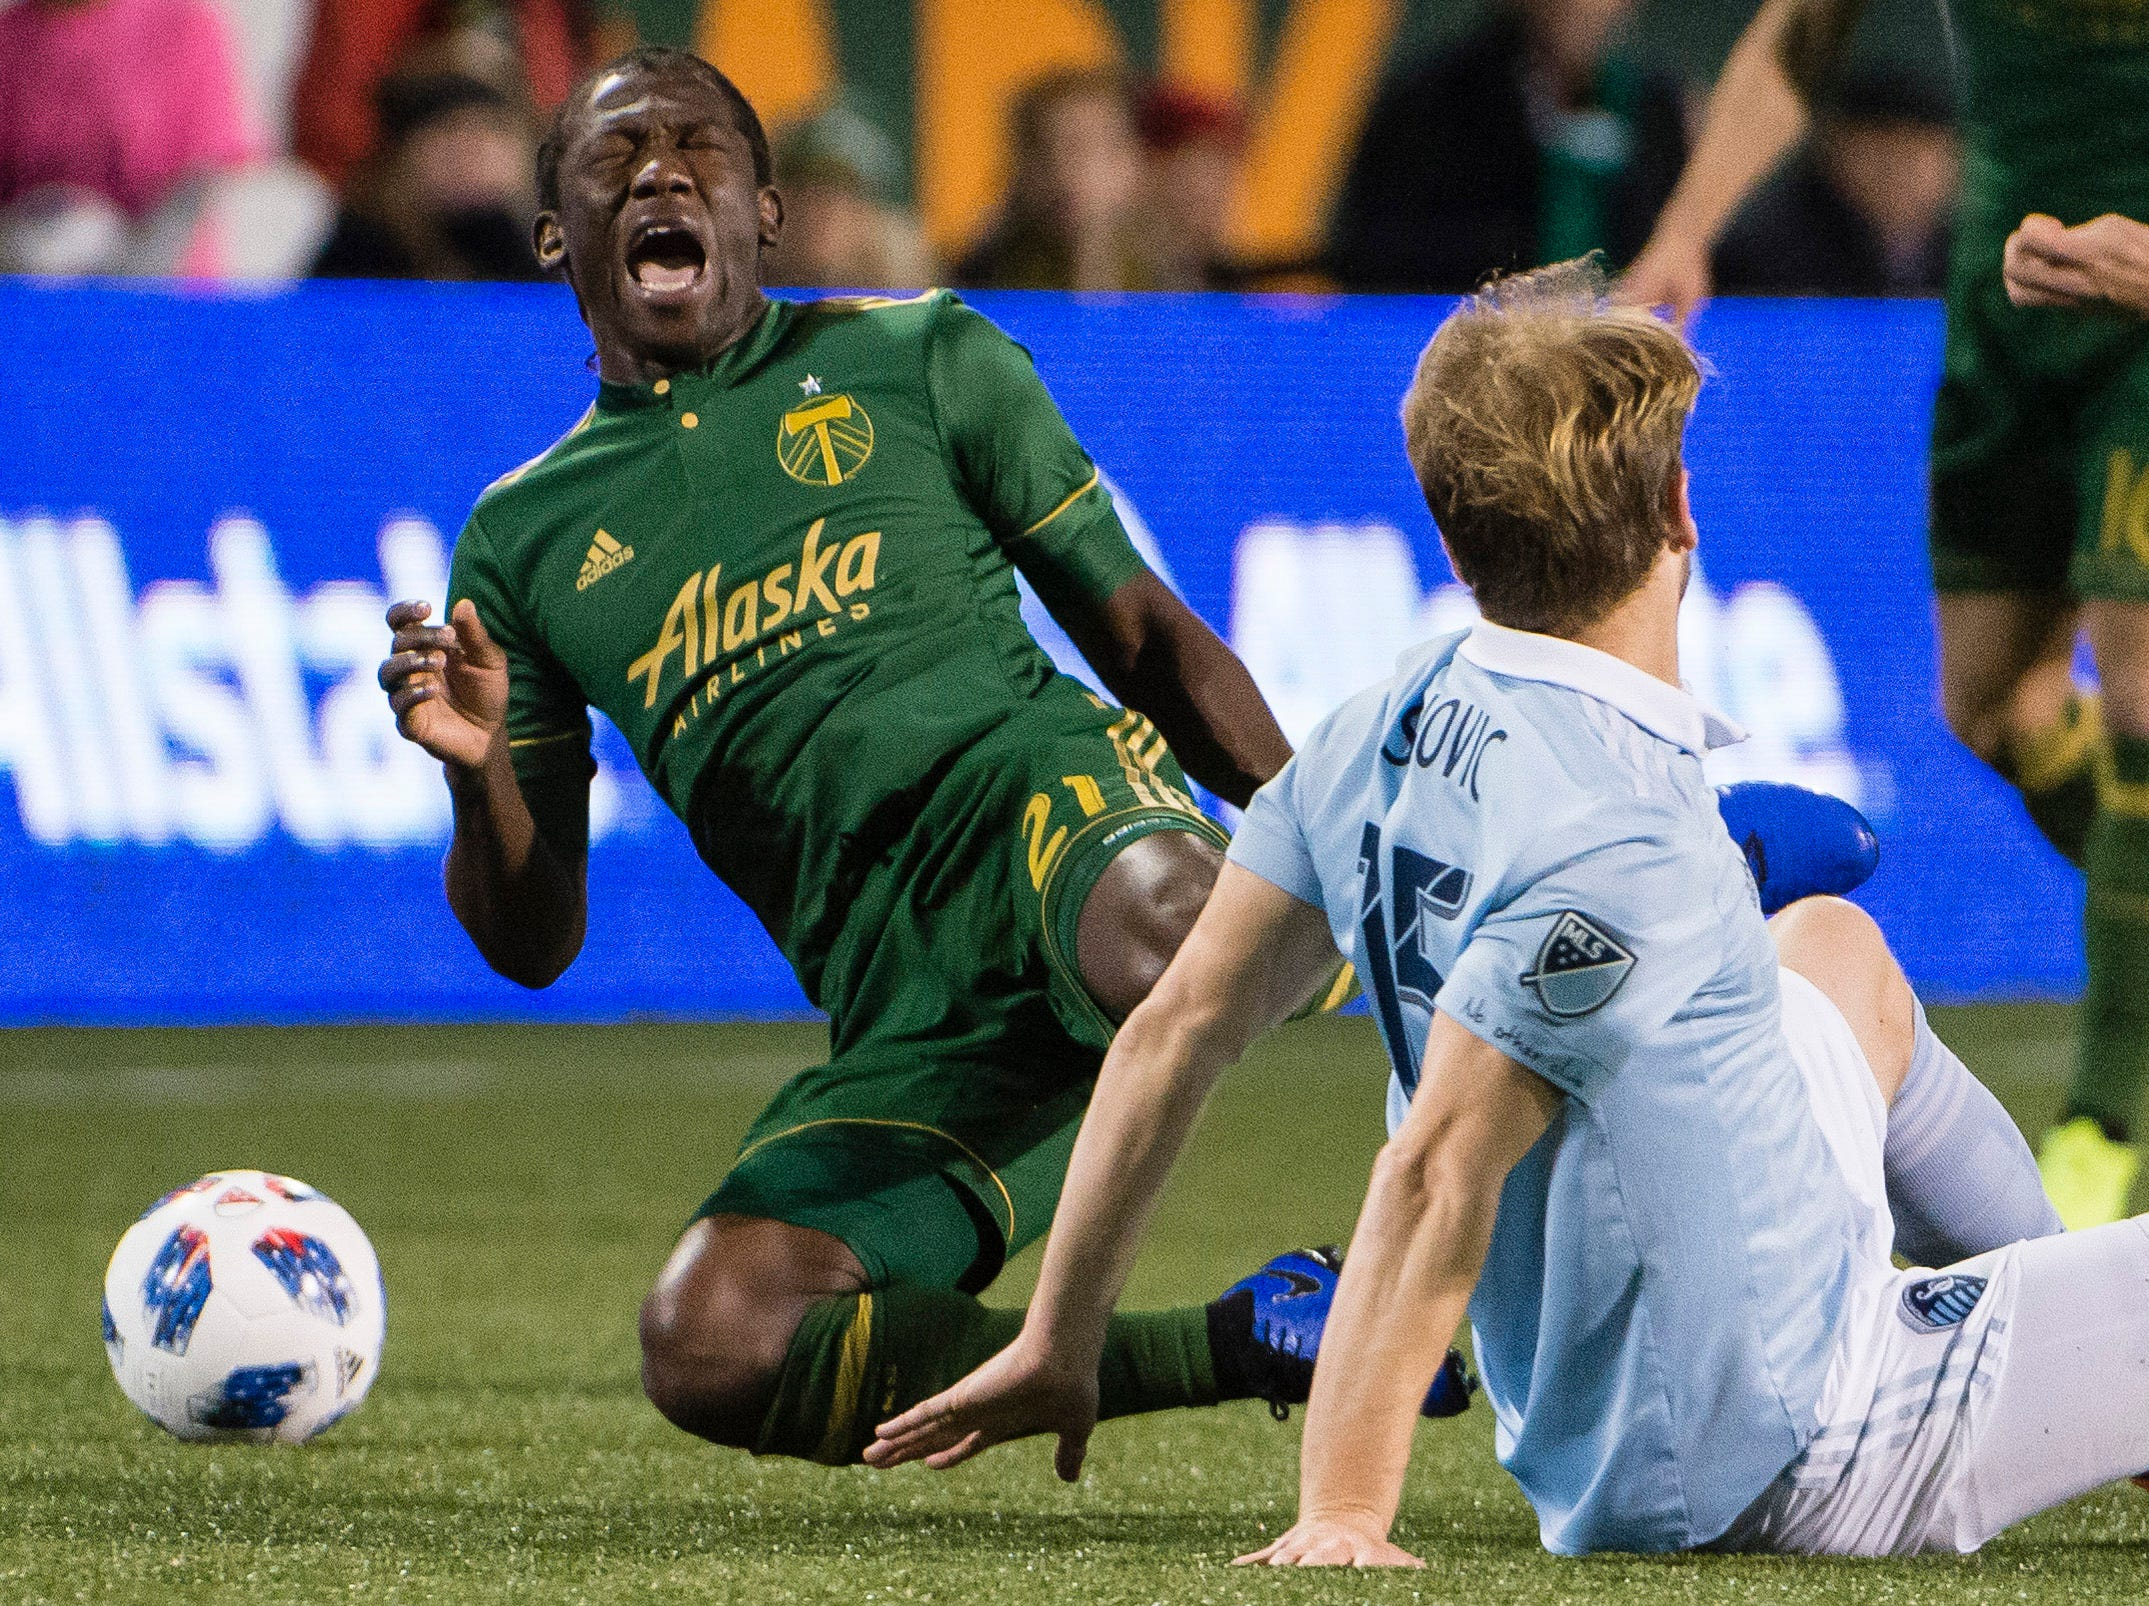 Nov 25, 2018; Portland, OR, USA; Portland Timbers midfielder Diego Chara (21) grimaces in pain after Sporting Kansas City defender Seth Sinovic (15) makes a slide tackle during the first half in the first leg of the MLS Western Conference Championship at Providence Park. The game ended tied 0-0. Mandatory Credit: Troy Wayrynen-USA TODAY Sports